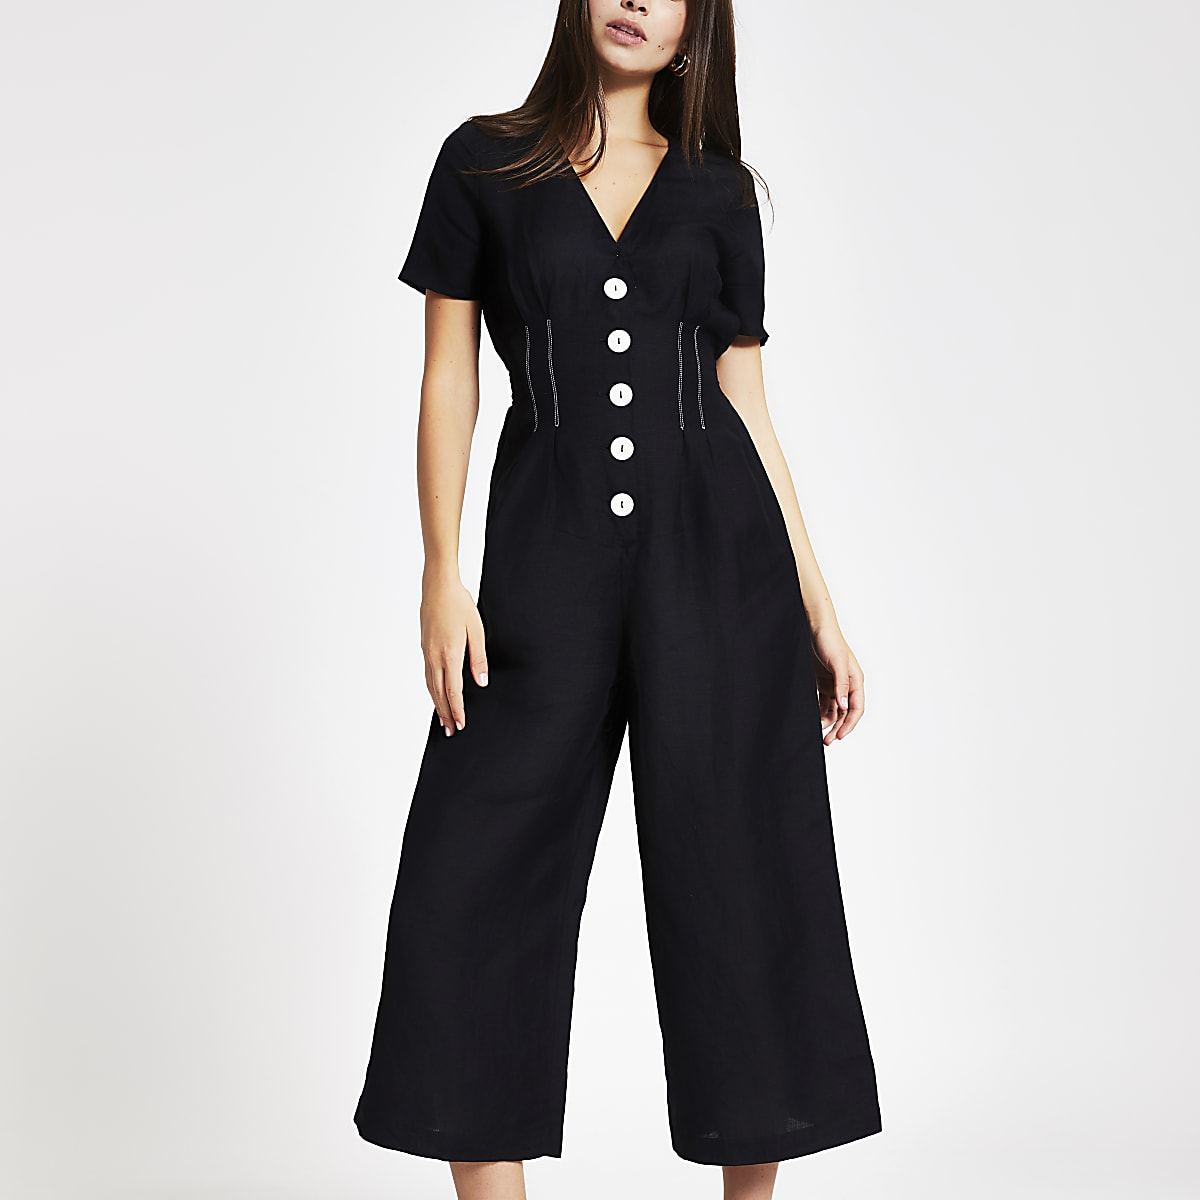 Black button front wide leg jumpsuit